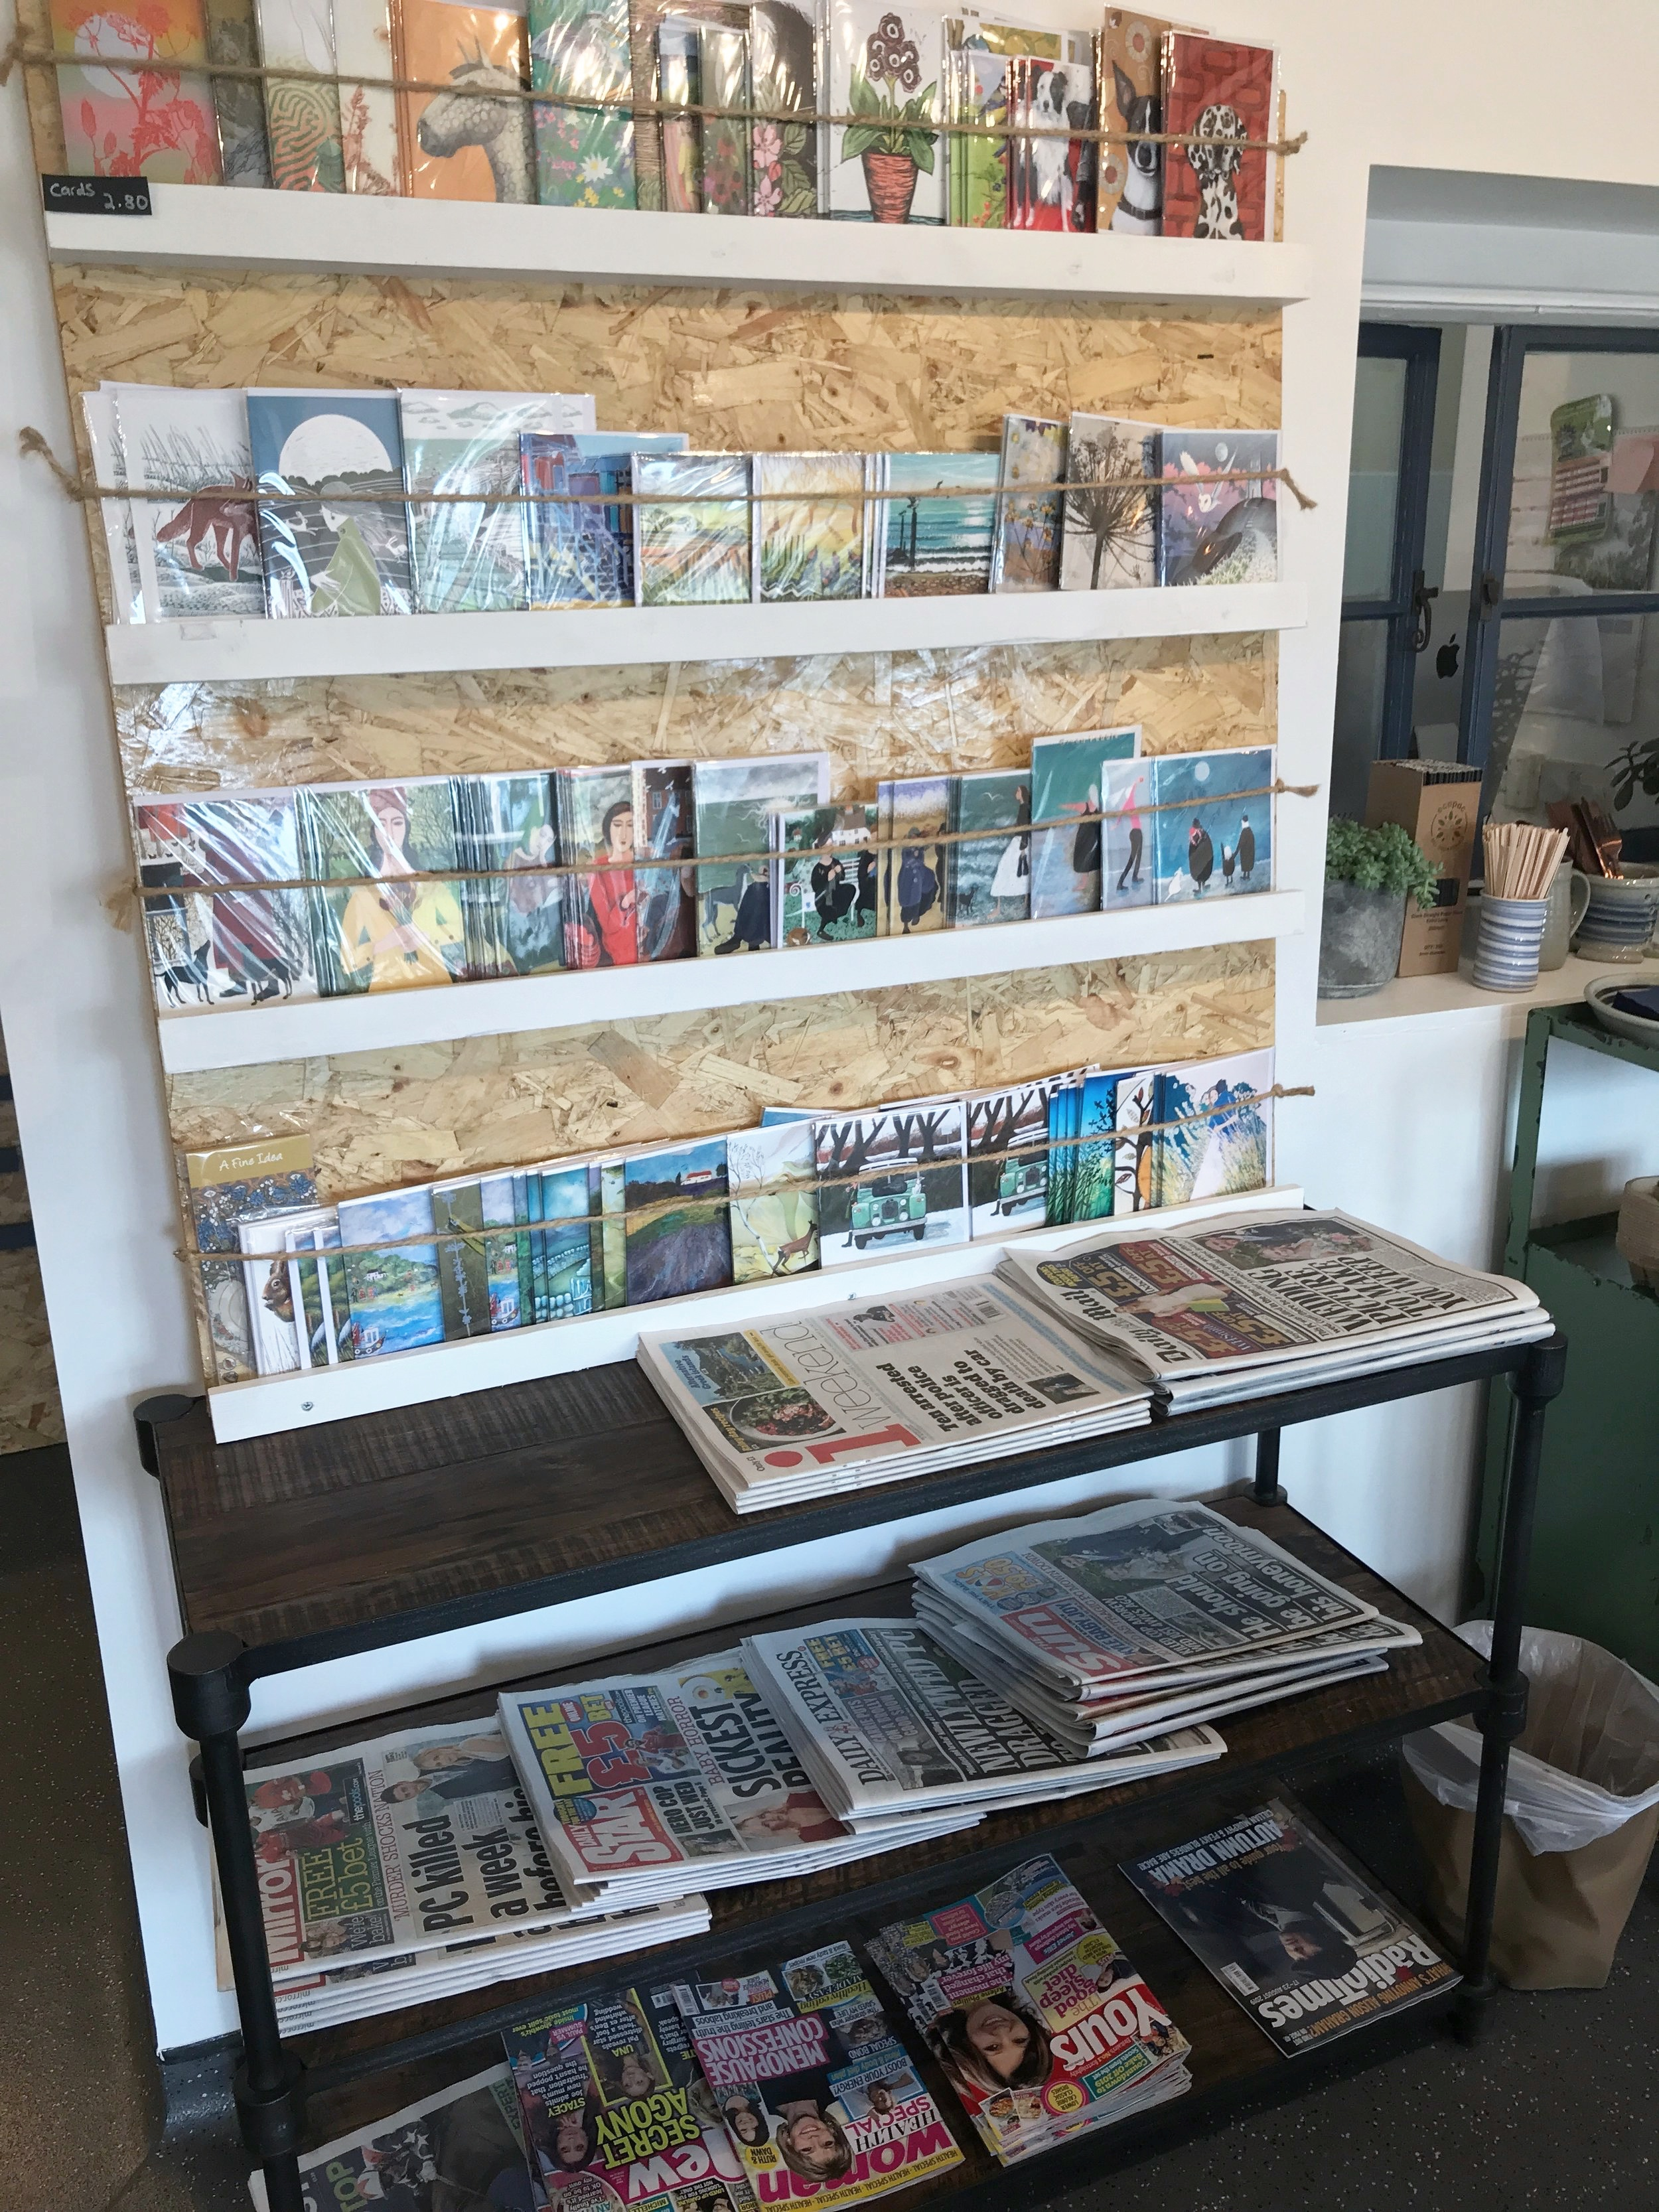 Daily papers and a selection of lovely cards.